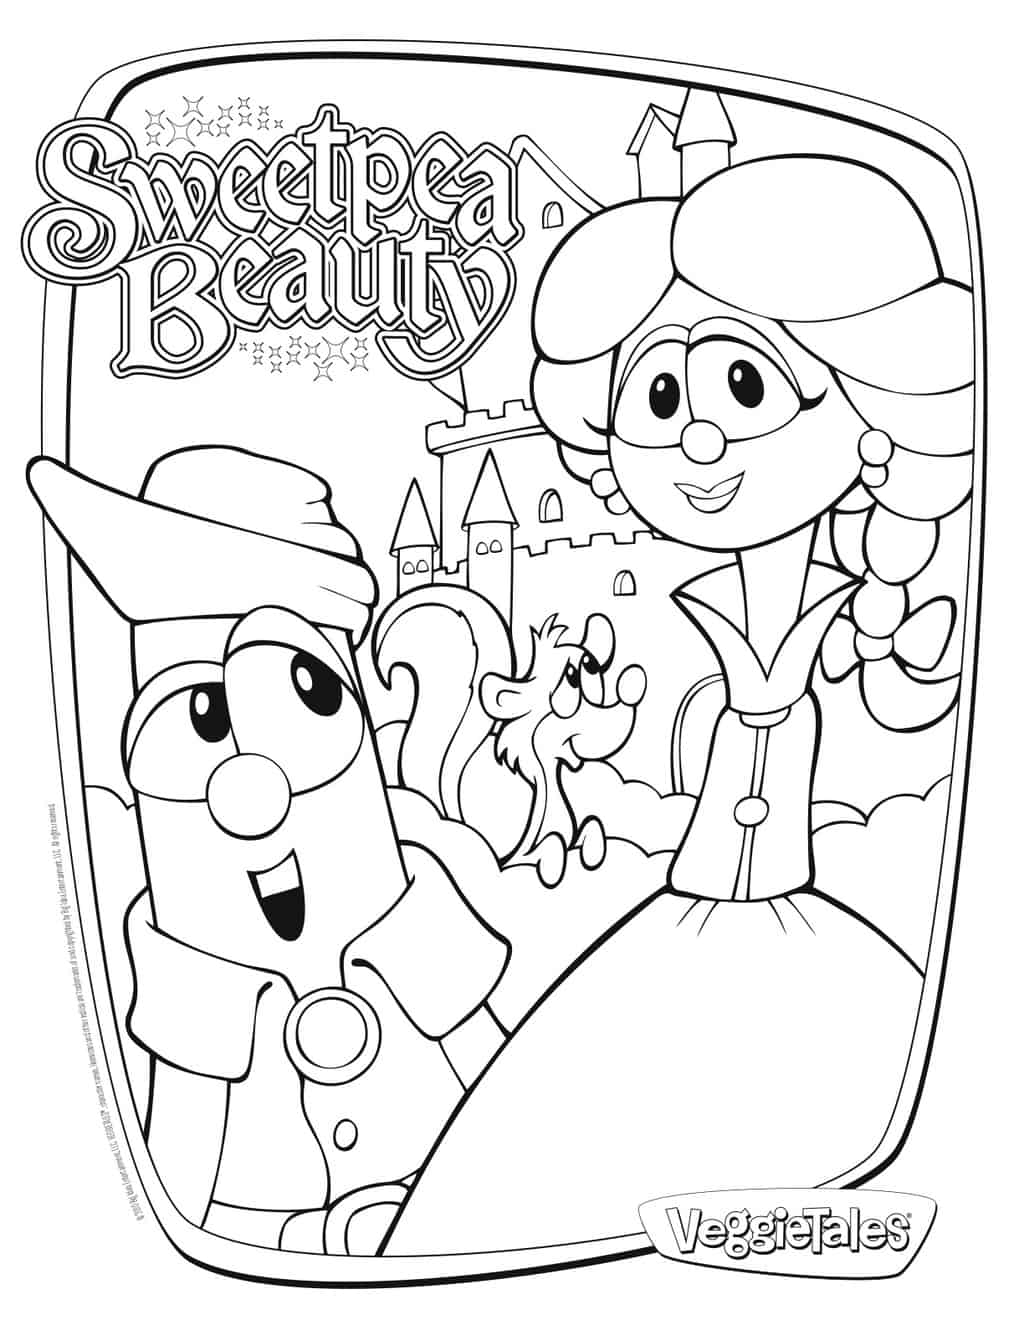 veggie tales coloring pages larryboy - photo#3